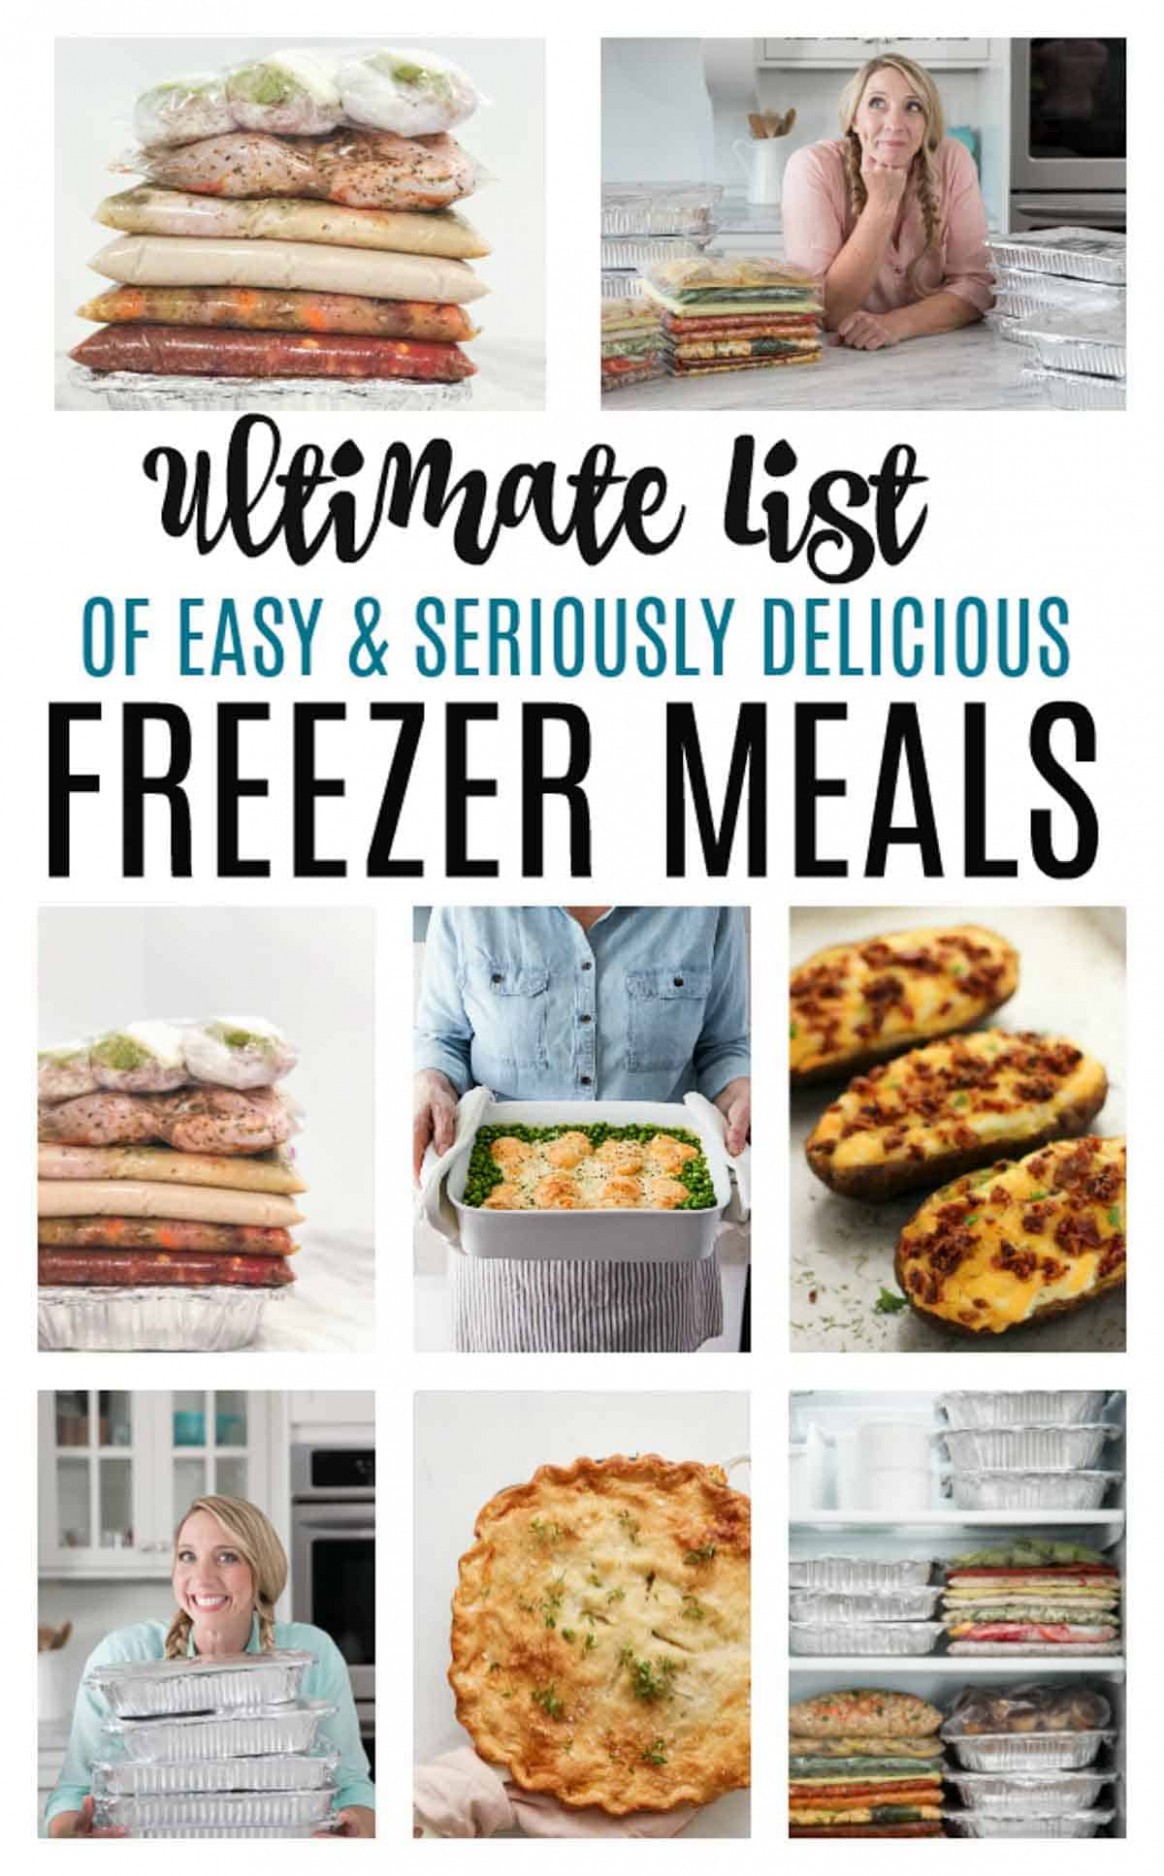 Make Ahead Freezer Meals for a month - chicken recipes you can freeze